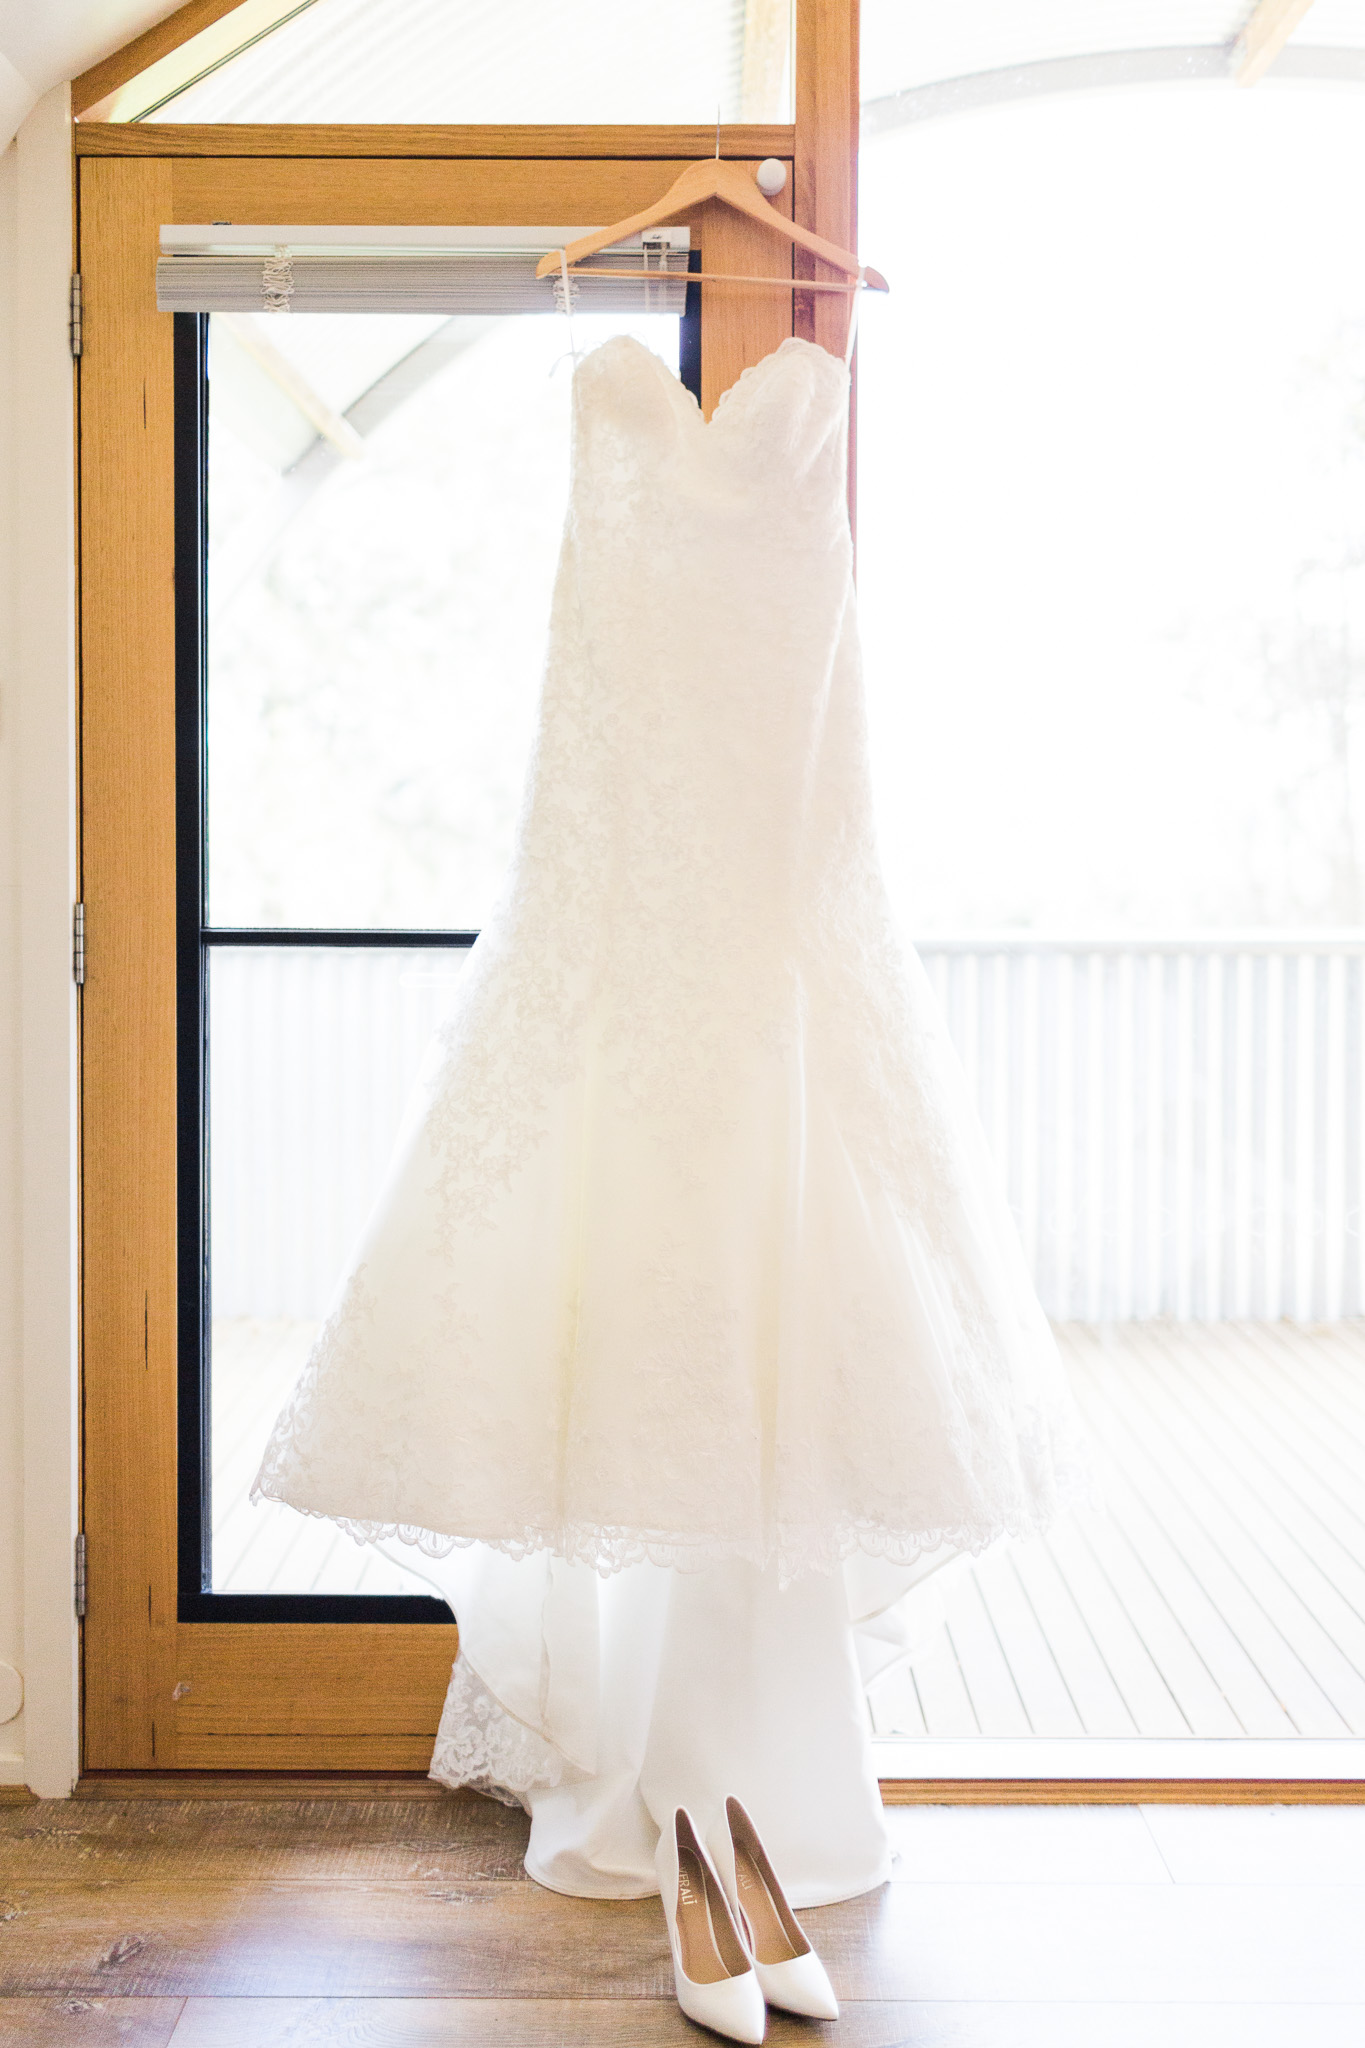 Dress and Shoes - Gold Creek Station Wedding